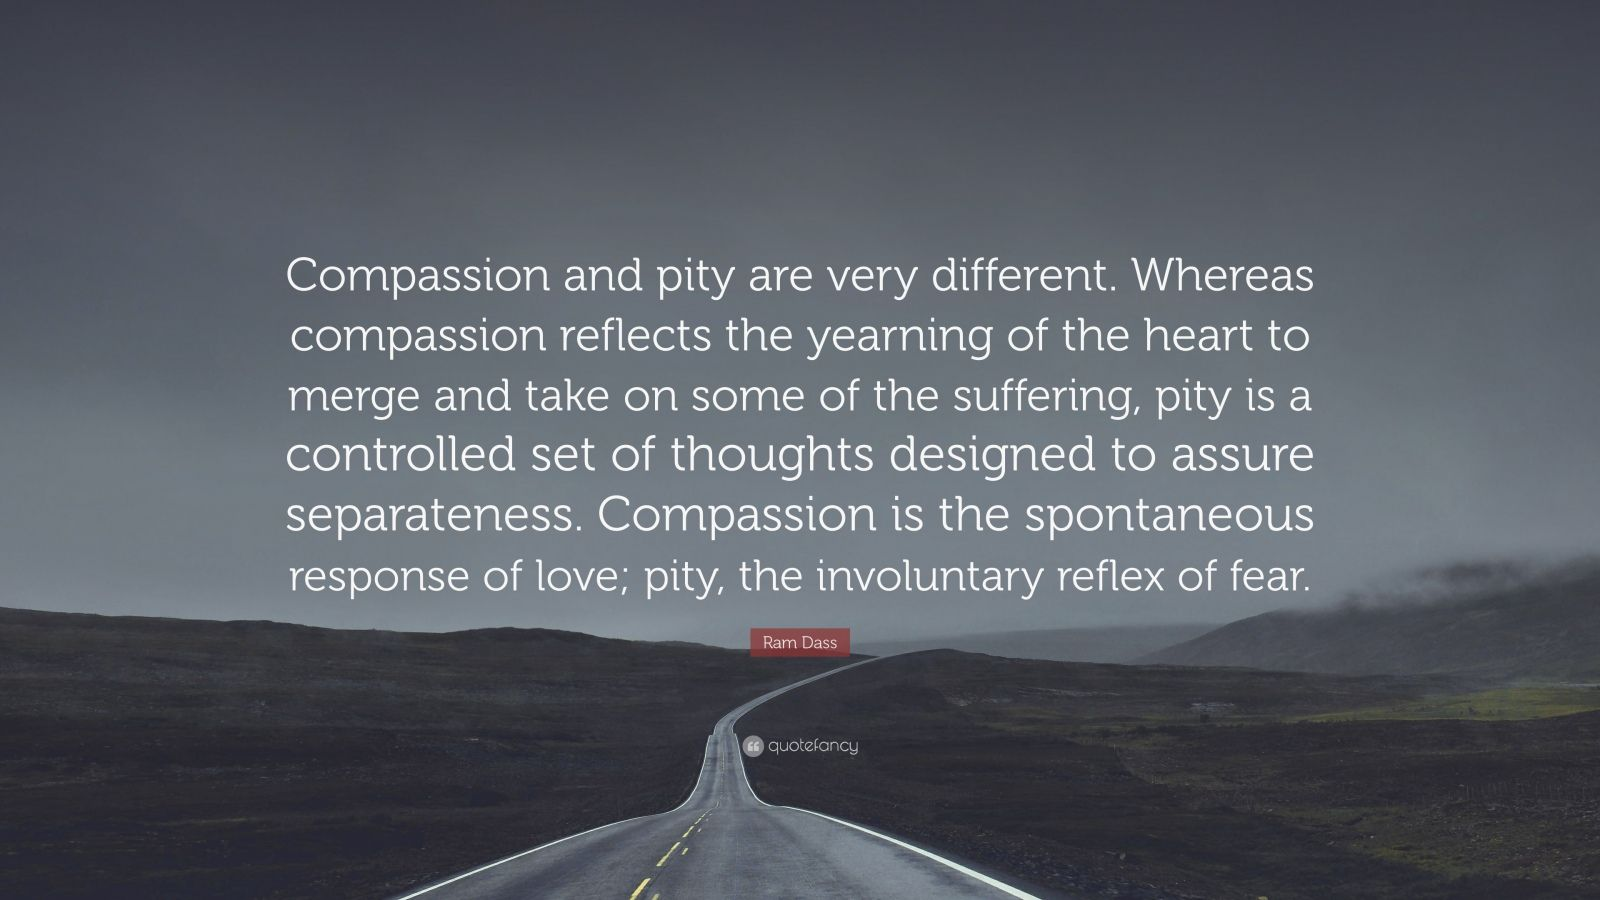 """Ram Dass Quote: """"Compassion and pity are very different. Whereas compassion reflects the yearning of the heart to merge and take on some of the suffering, pity is a controlled set of thoughts designed to assure separateness. Compassion is the spontaneous response of love; pity, the involuntary reflex of fear."""""""